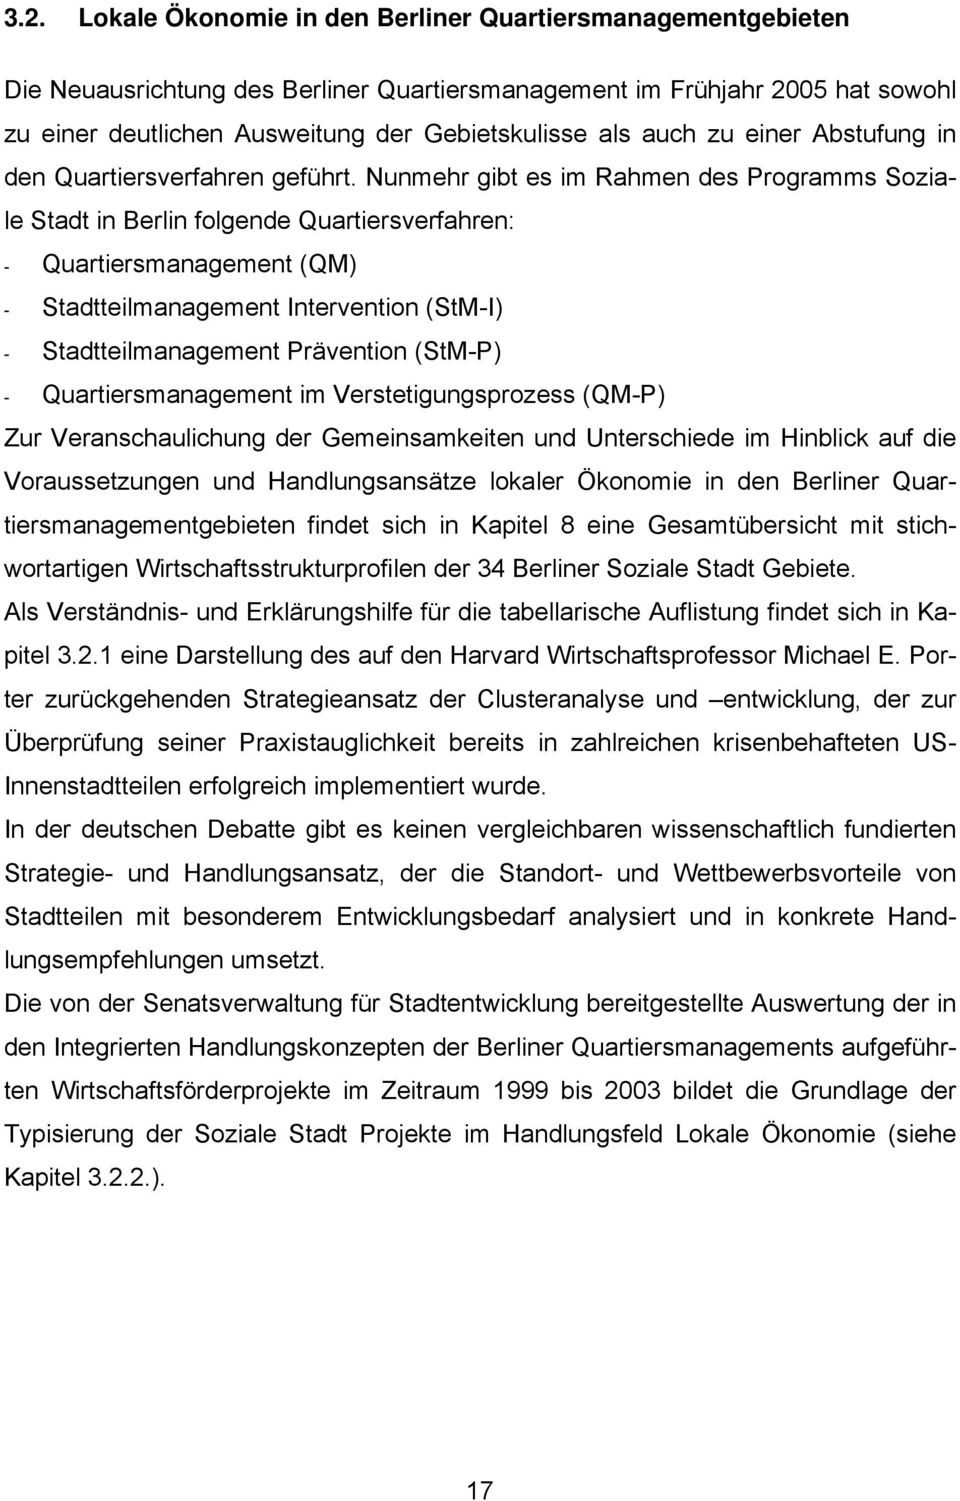 Nunmehr gibt es im Rahmen des Programms Soziale Stadt in Berlin folgende Quartiersverfahren: - Quartiersmanagement (QM) - Stadtteilmanagement Intervention (StM-I) - Stadtteilmanagement Prävention